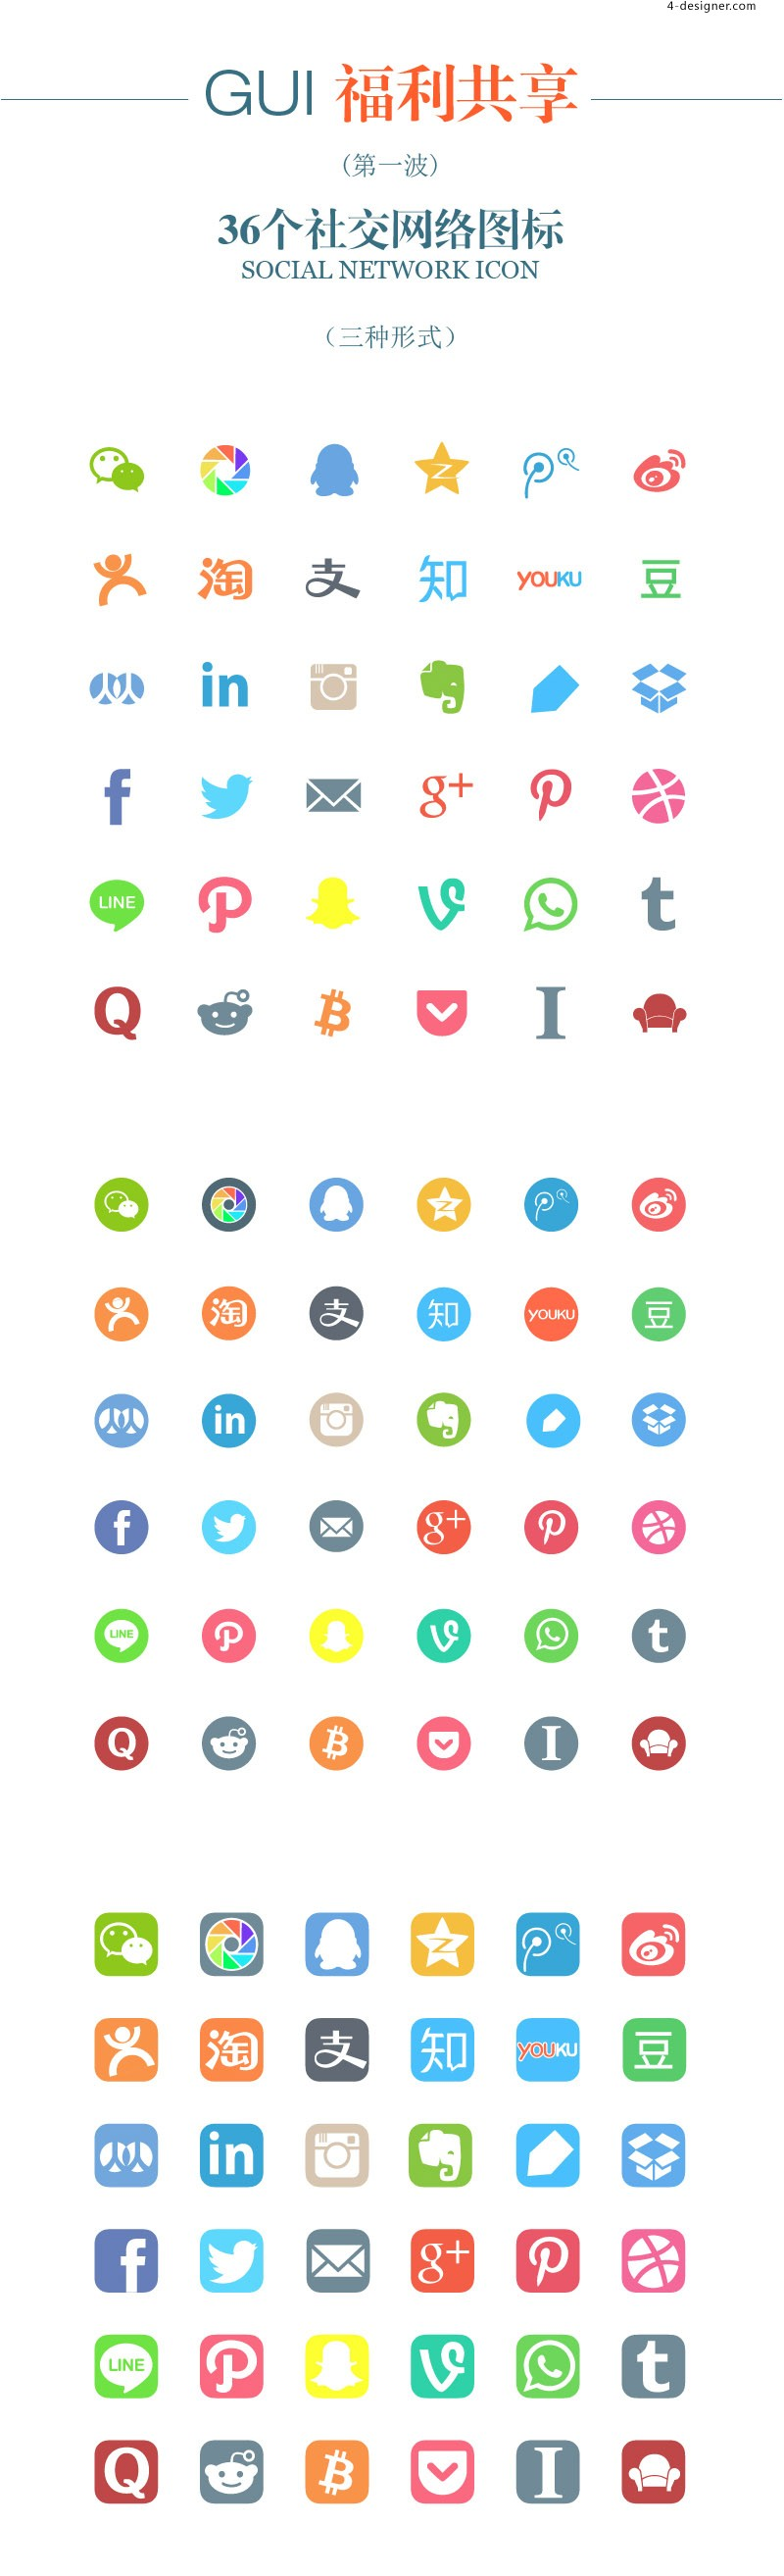 Well known social network icon vector material